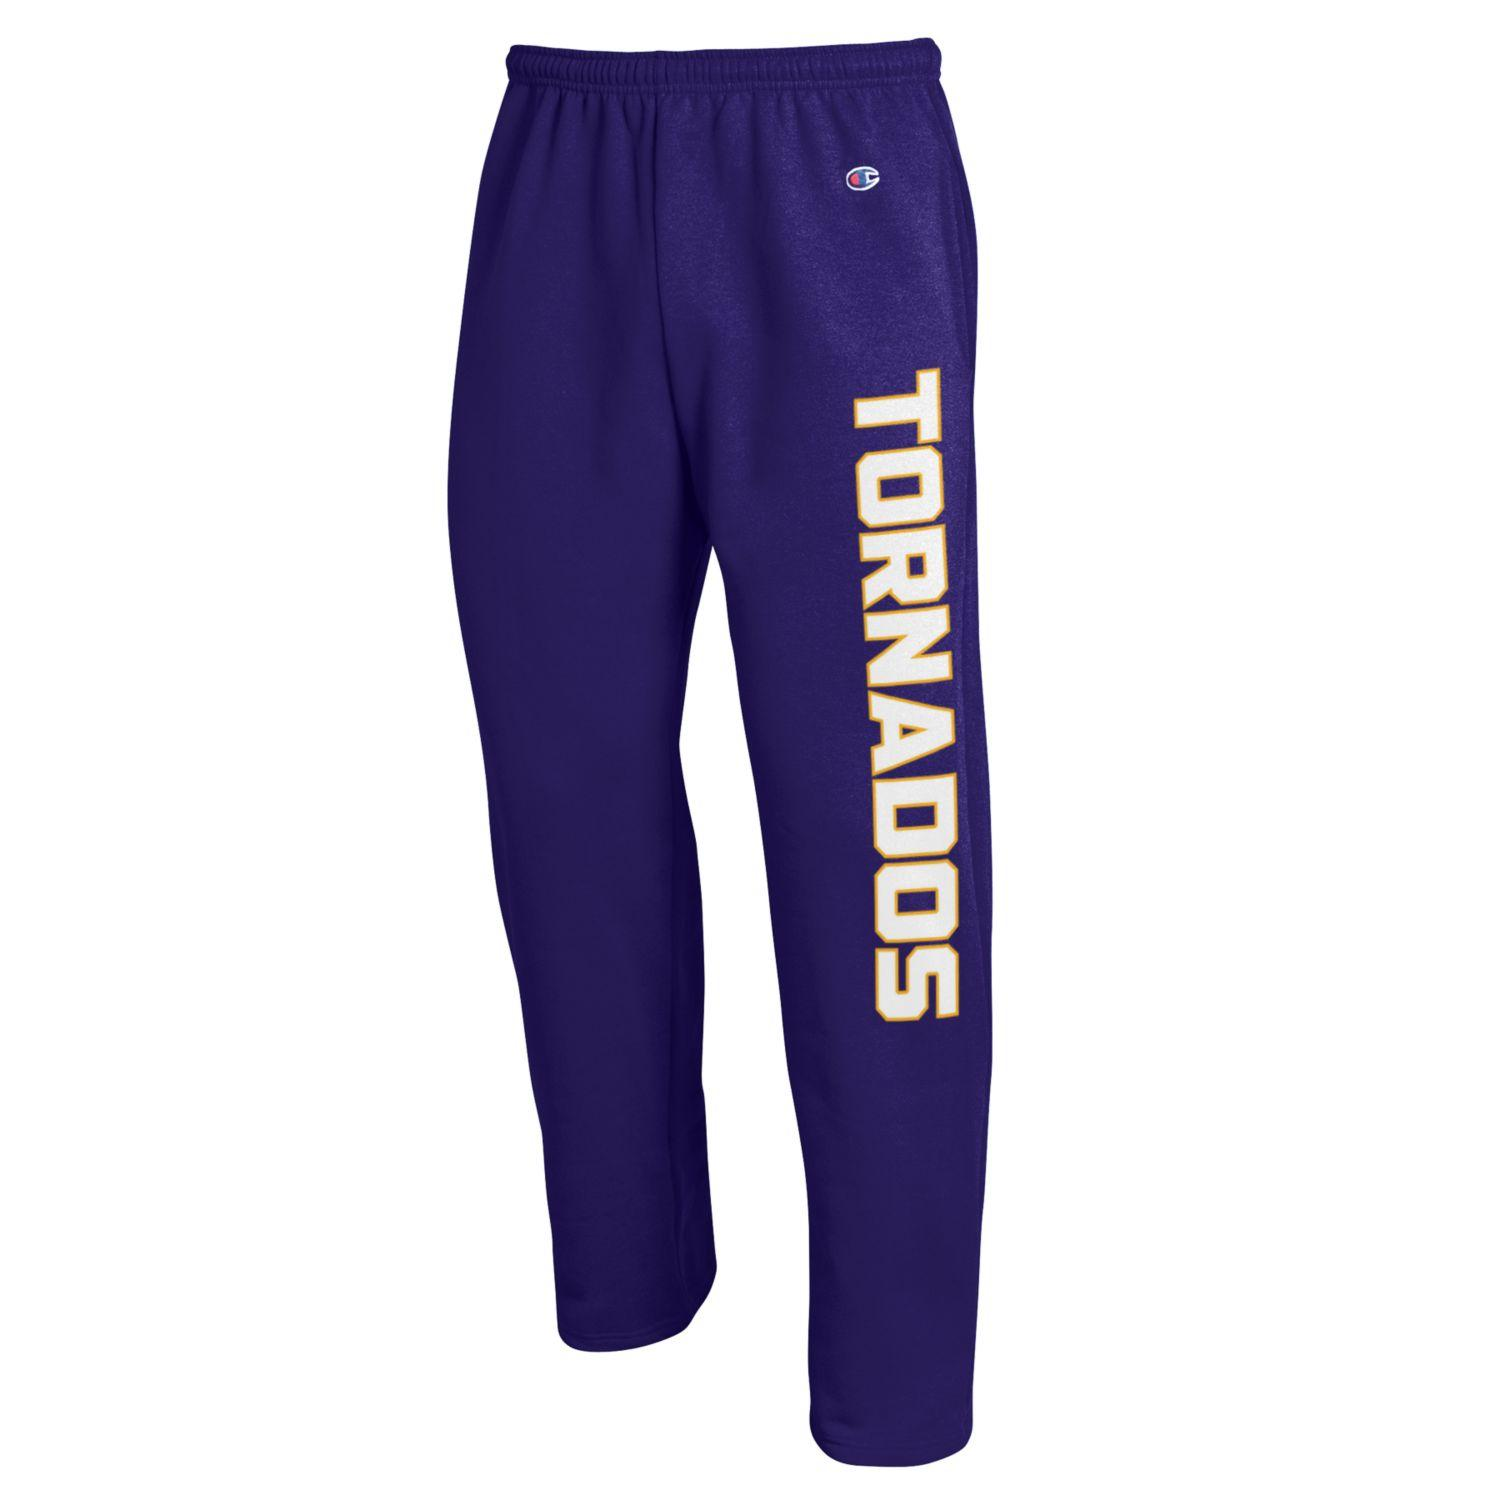 Champion - Powerblend Purple Pant